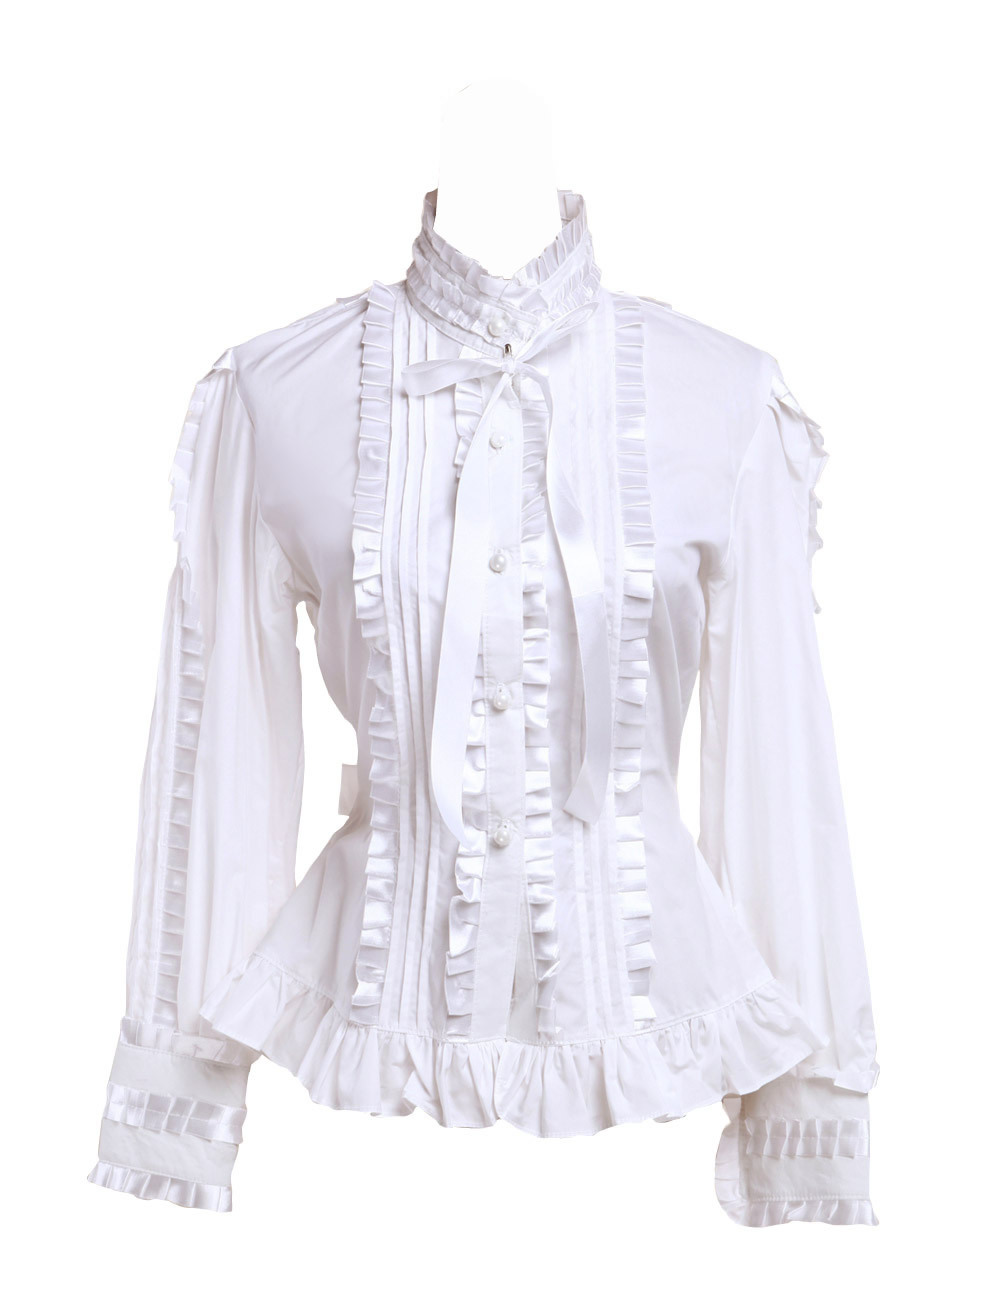 6a97e68c9479c White Cotton Stand-up Collar Lace Ruffle and 30 similar items. Zm lb 13332  120 1